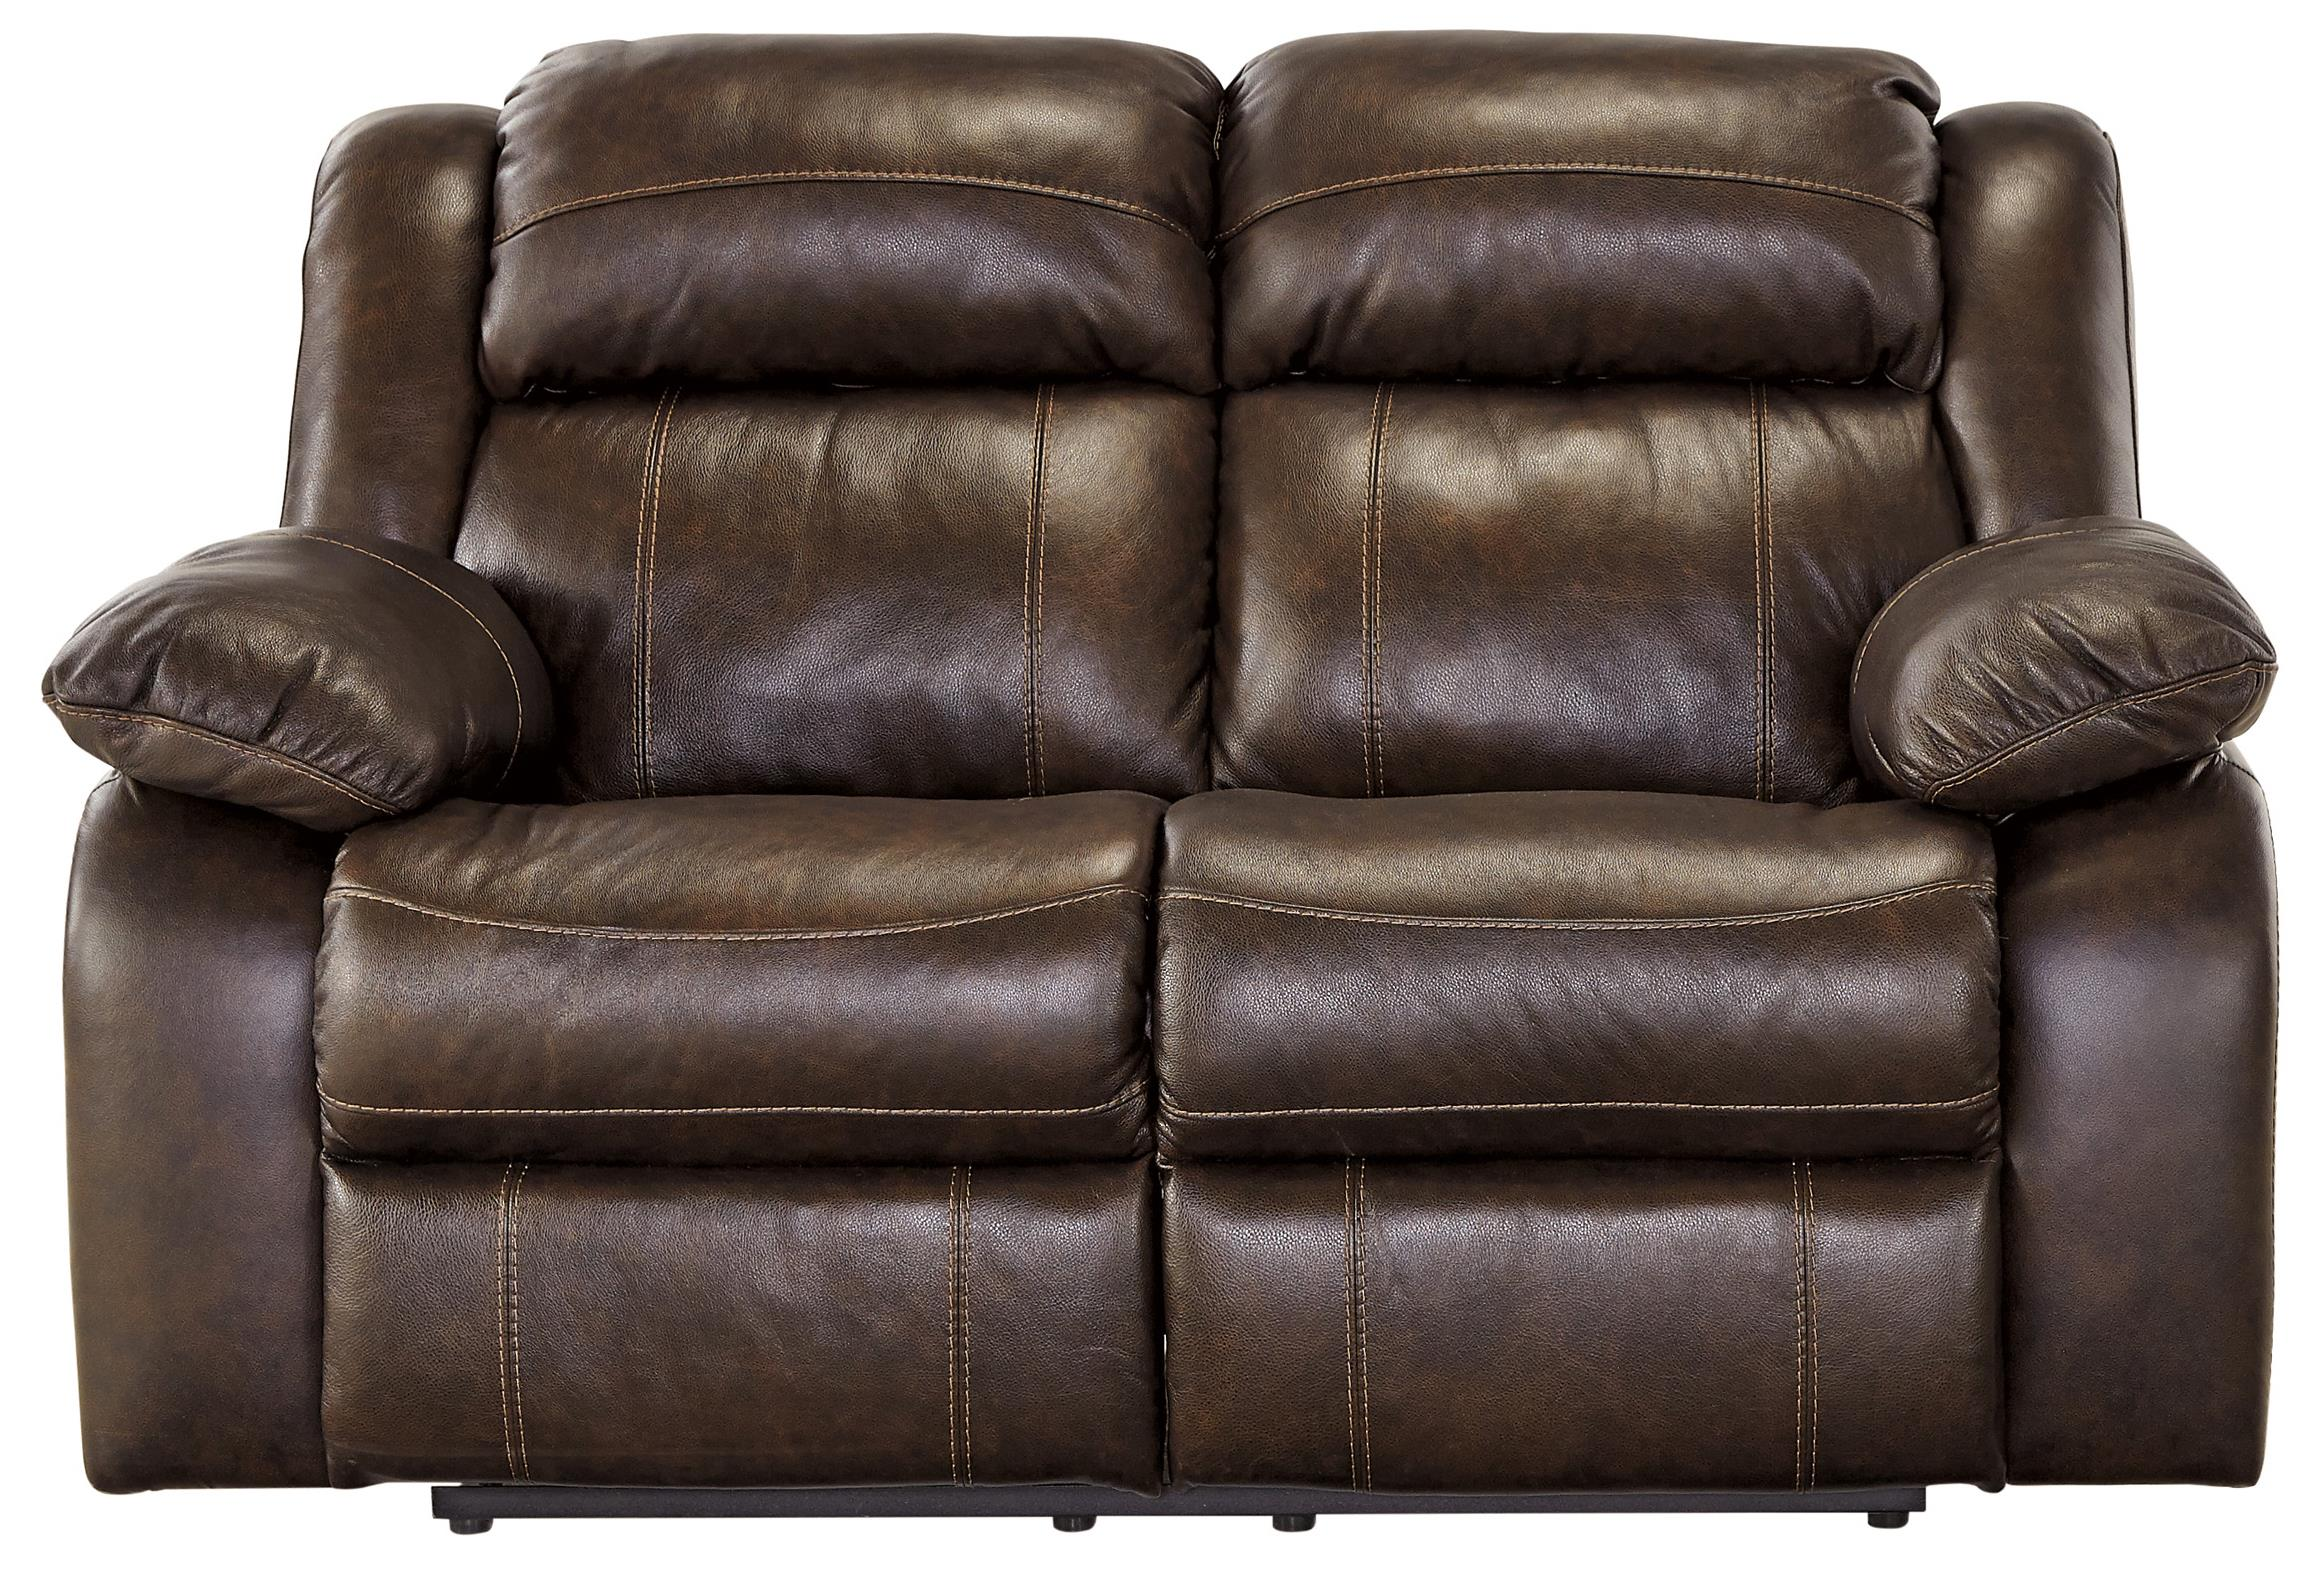 Signature Design by Ashley Branton Reclining Power Loveseat - Item Number: U7190174